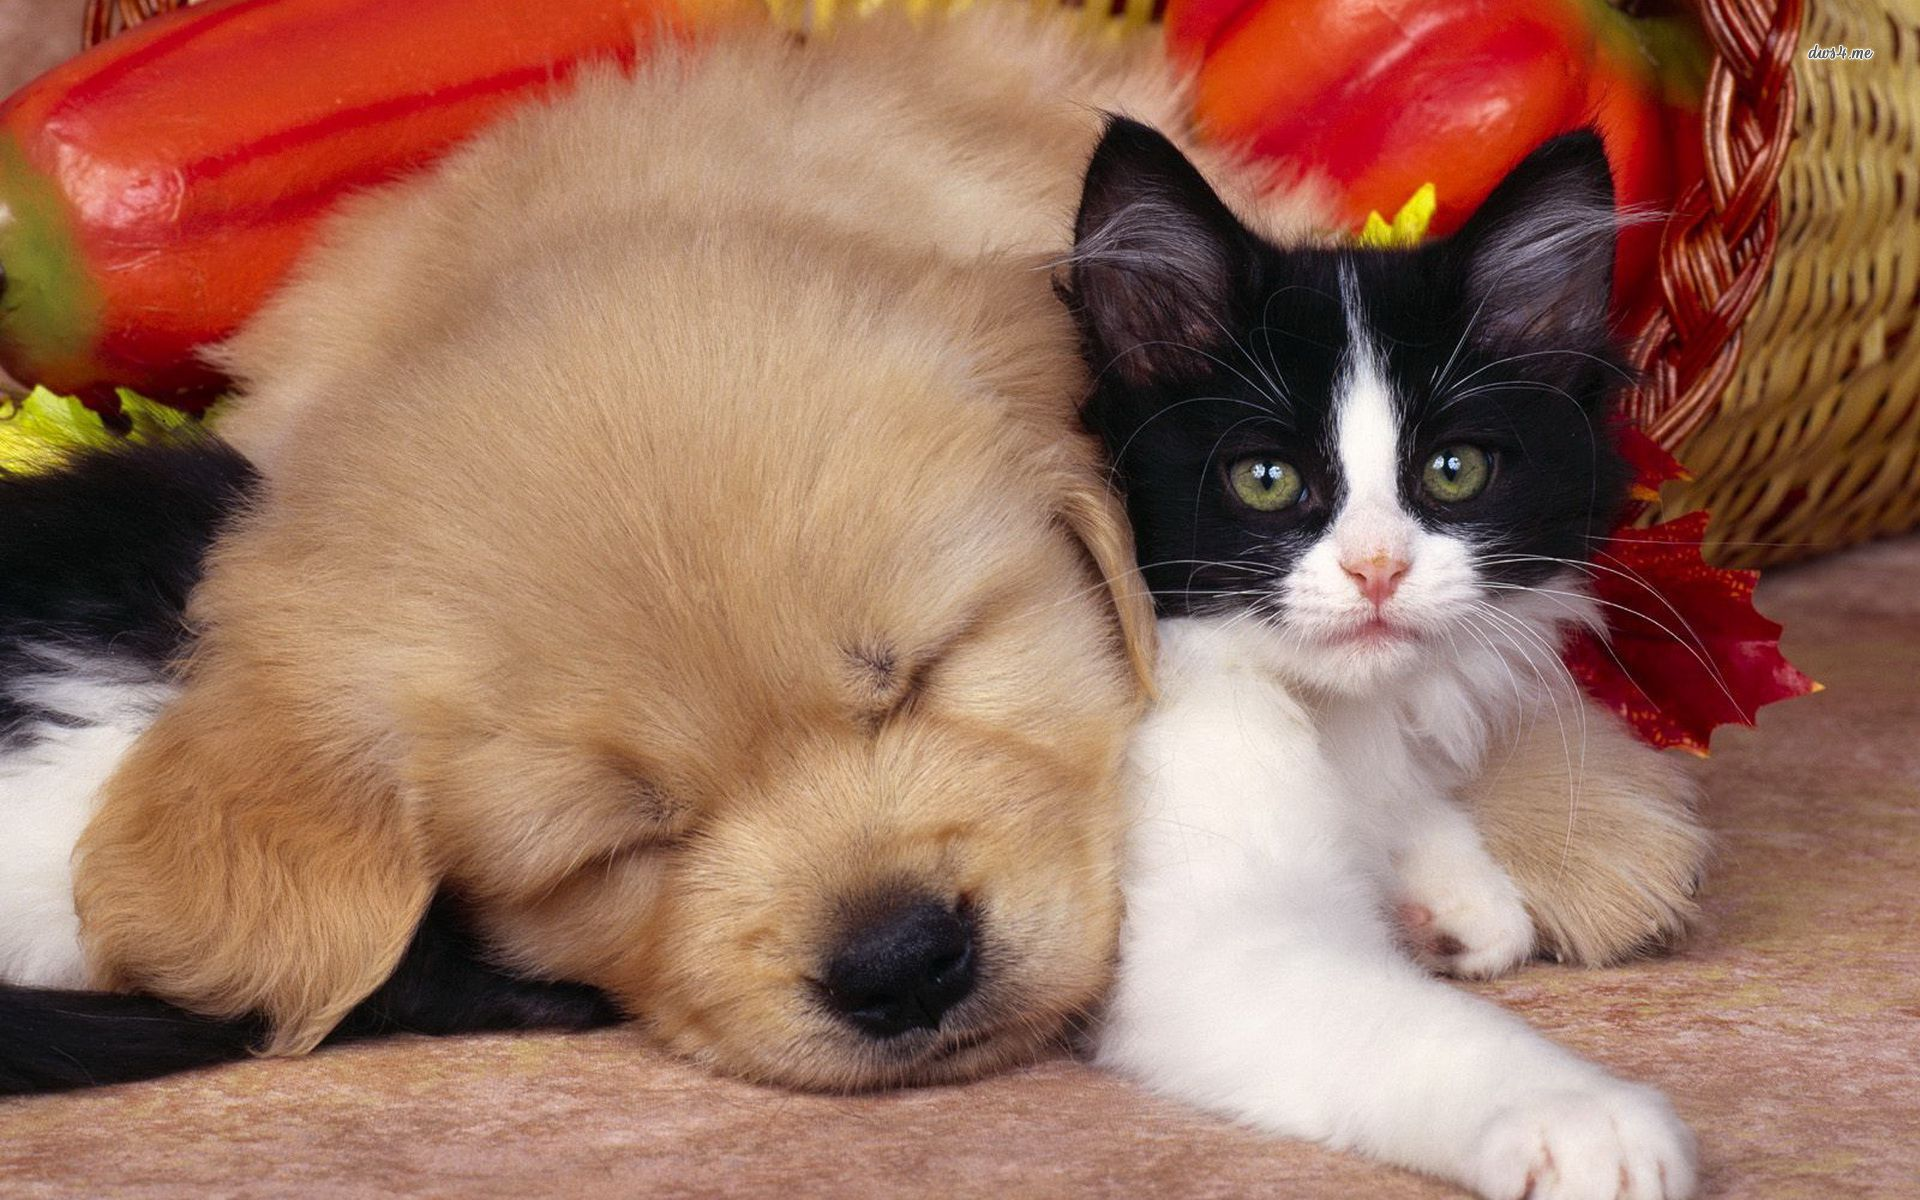 dog and cat Full HD Wallpaper and Background 1920x1200 1920x1200